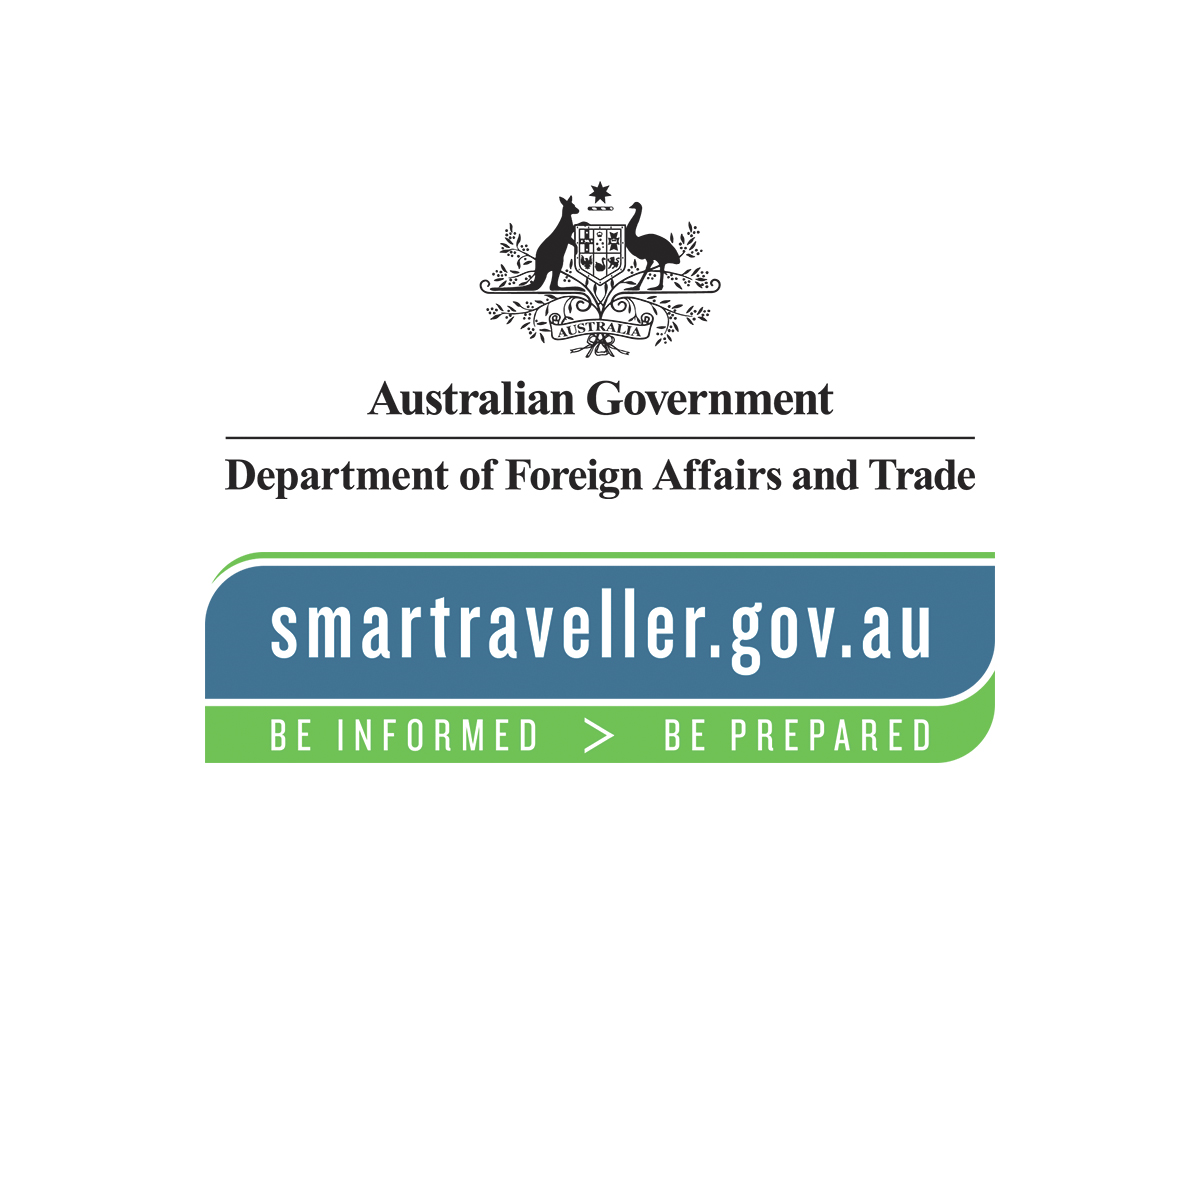 The Australian Government's travel advice and consular